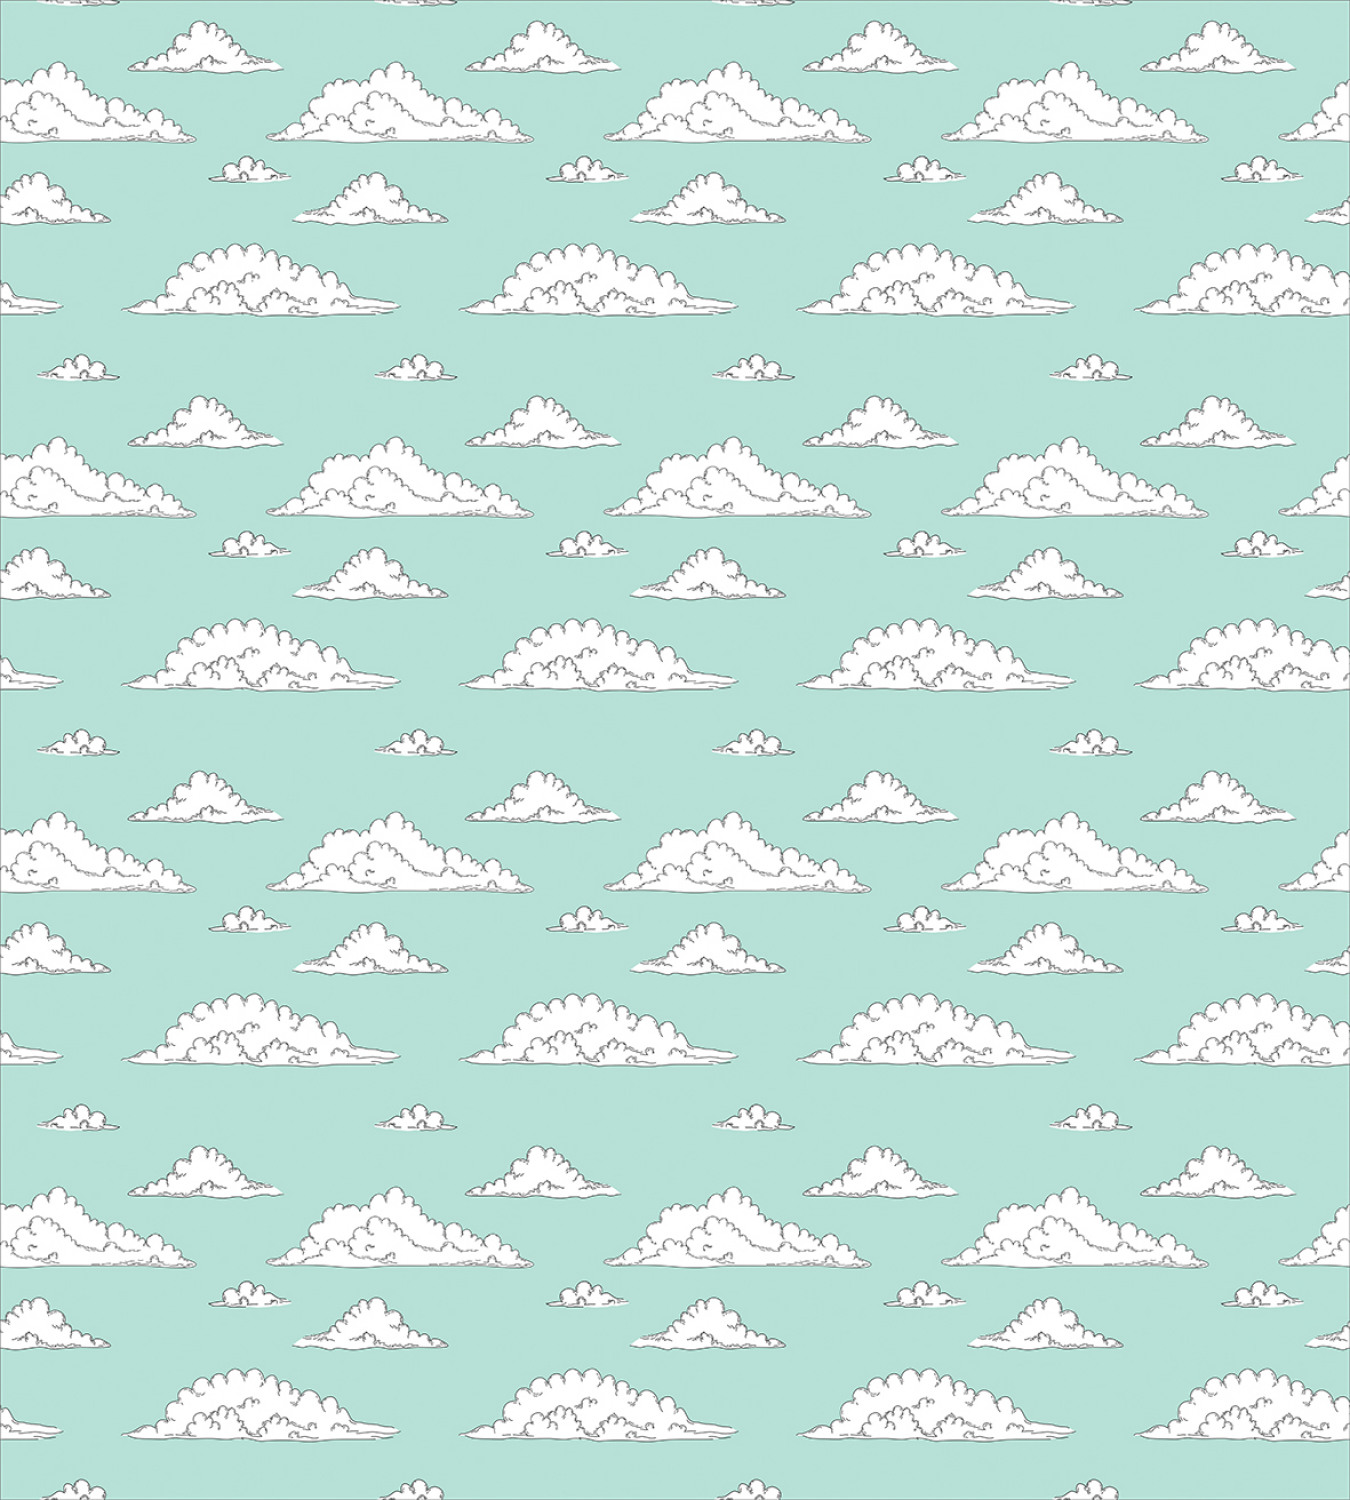 Teal-and-White-Duvet-Cover-Set-Twin-Queen-King-Sizes-with-Pillow-Shams-Ambesonne thumbnail 9